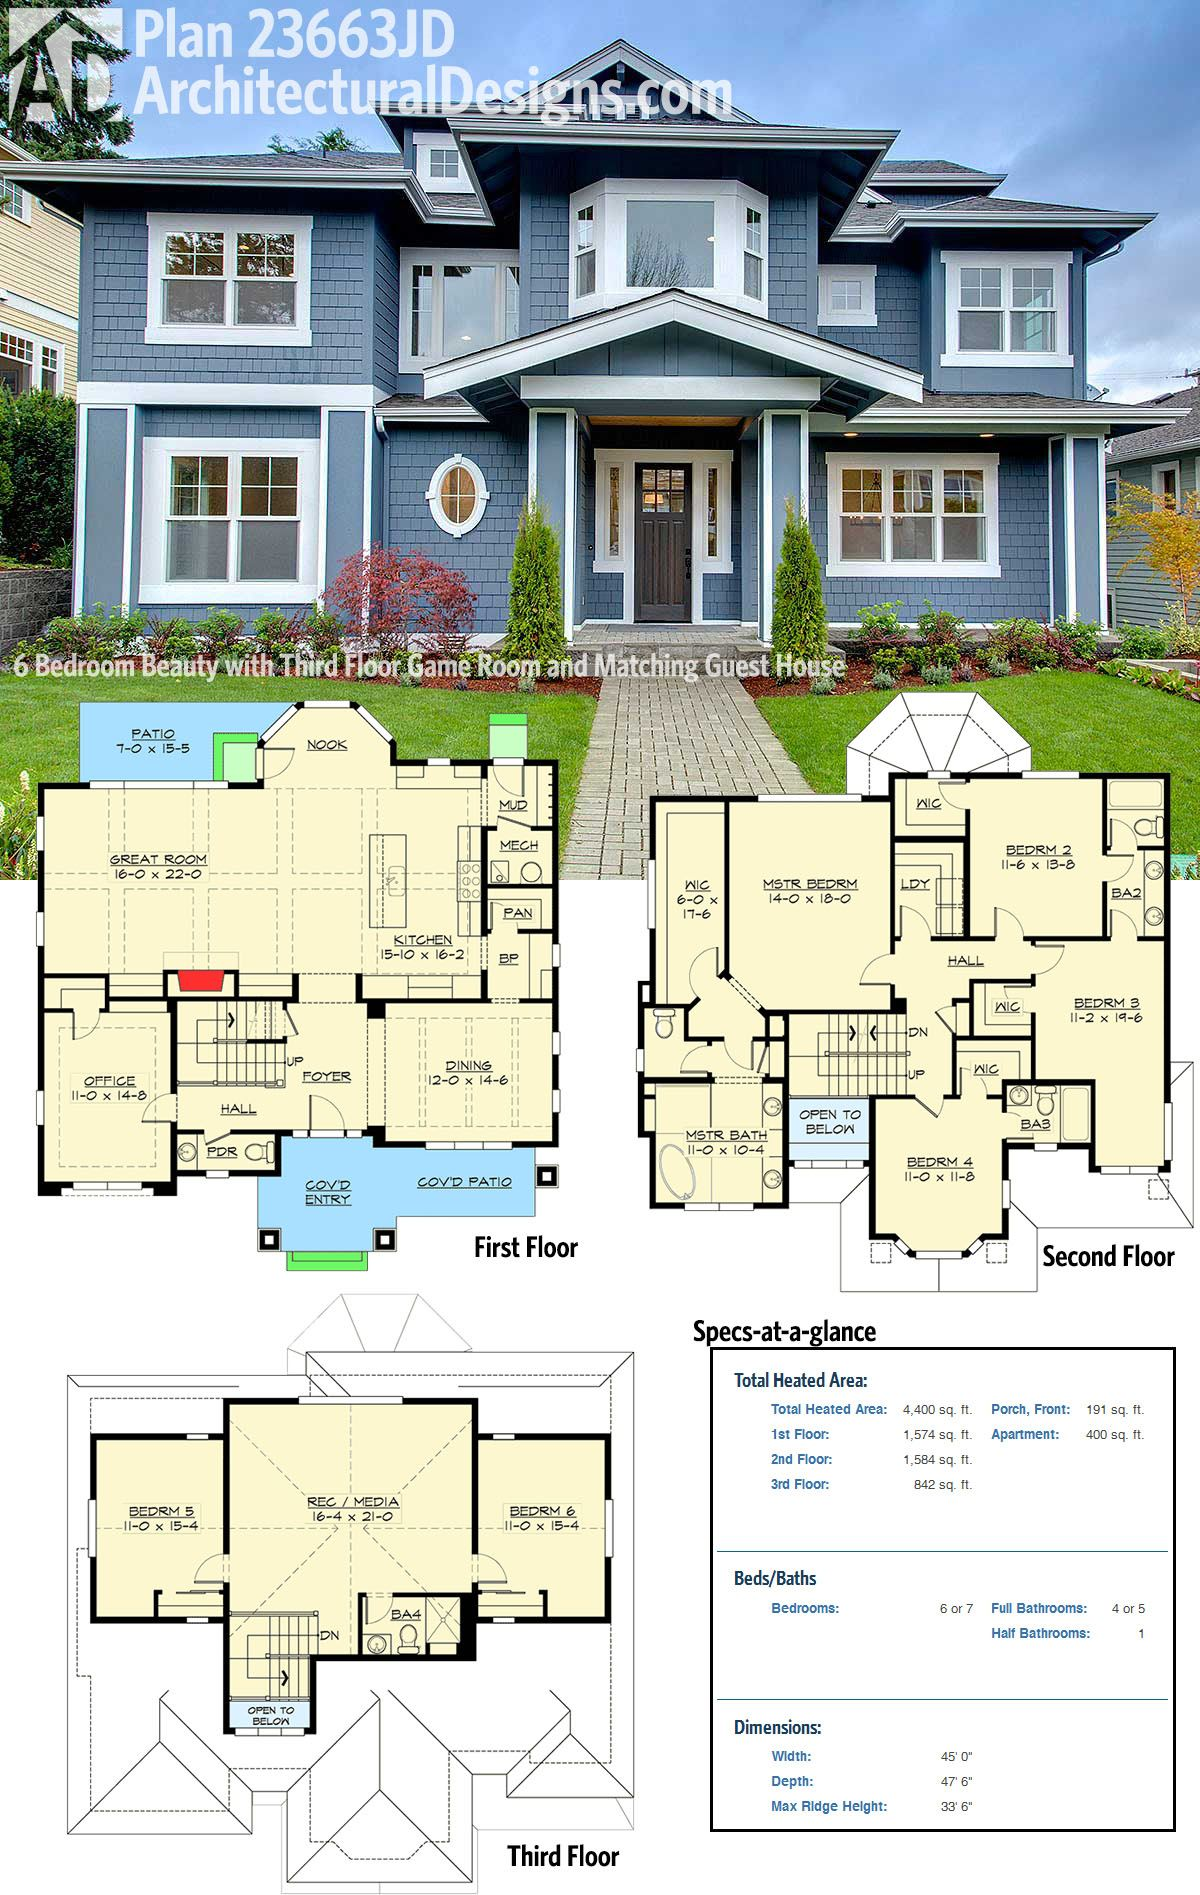 Plan 23663jd 6 bedroom beauty with third floor game room for U build it floor plans